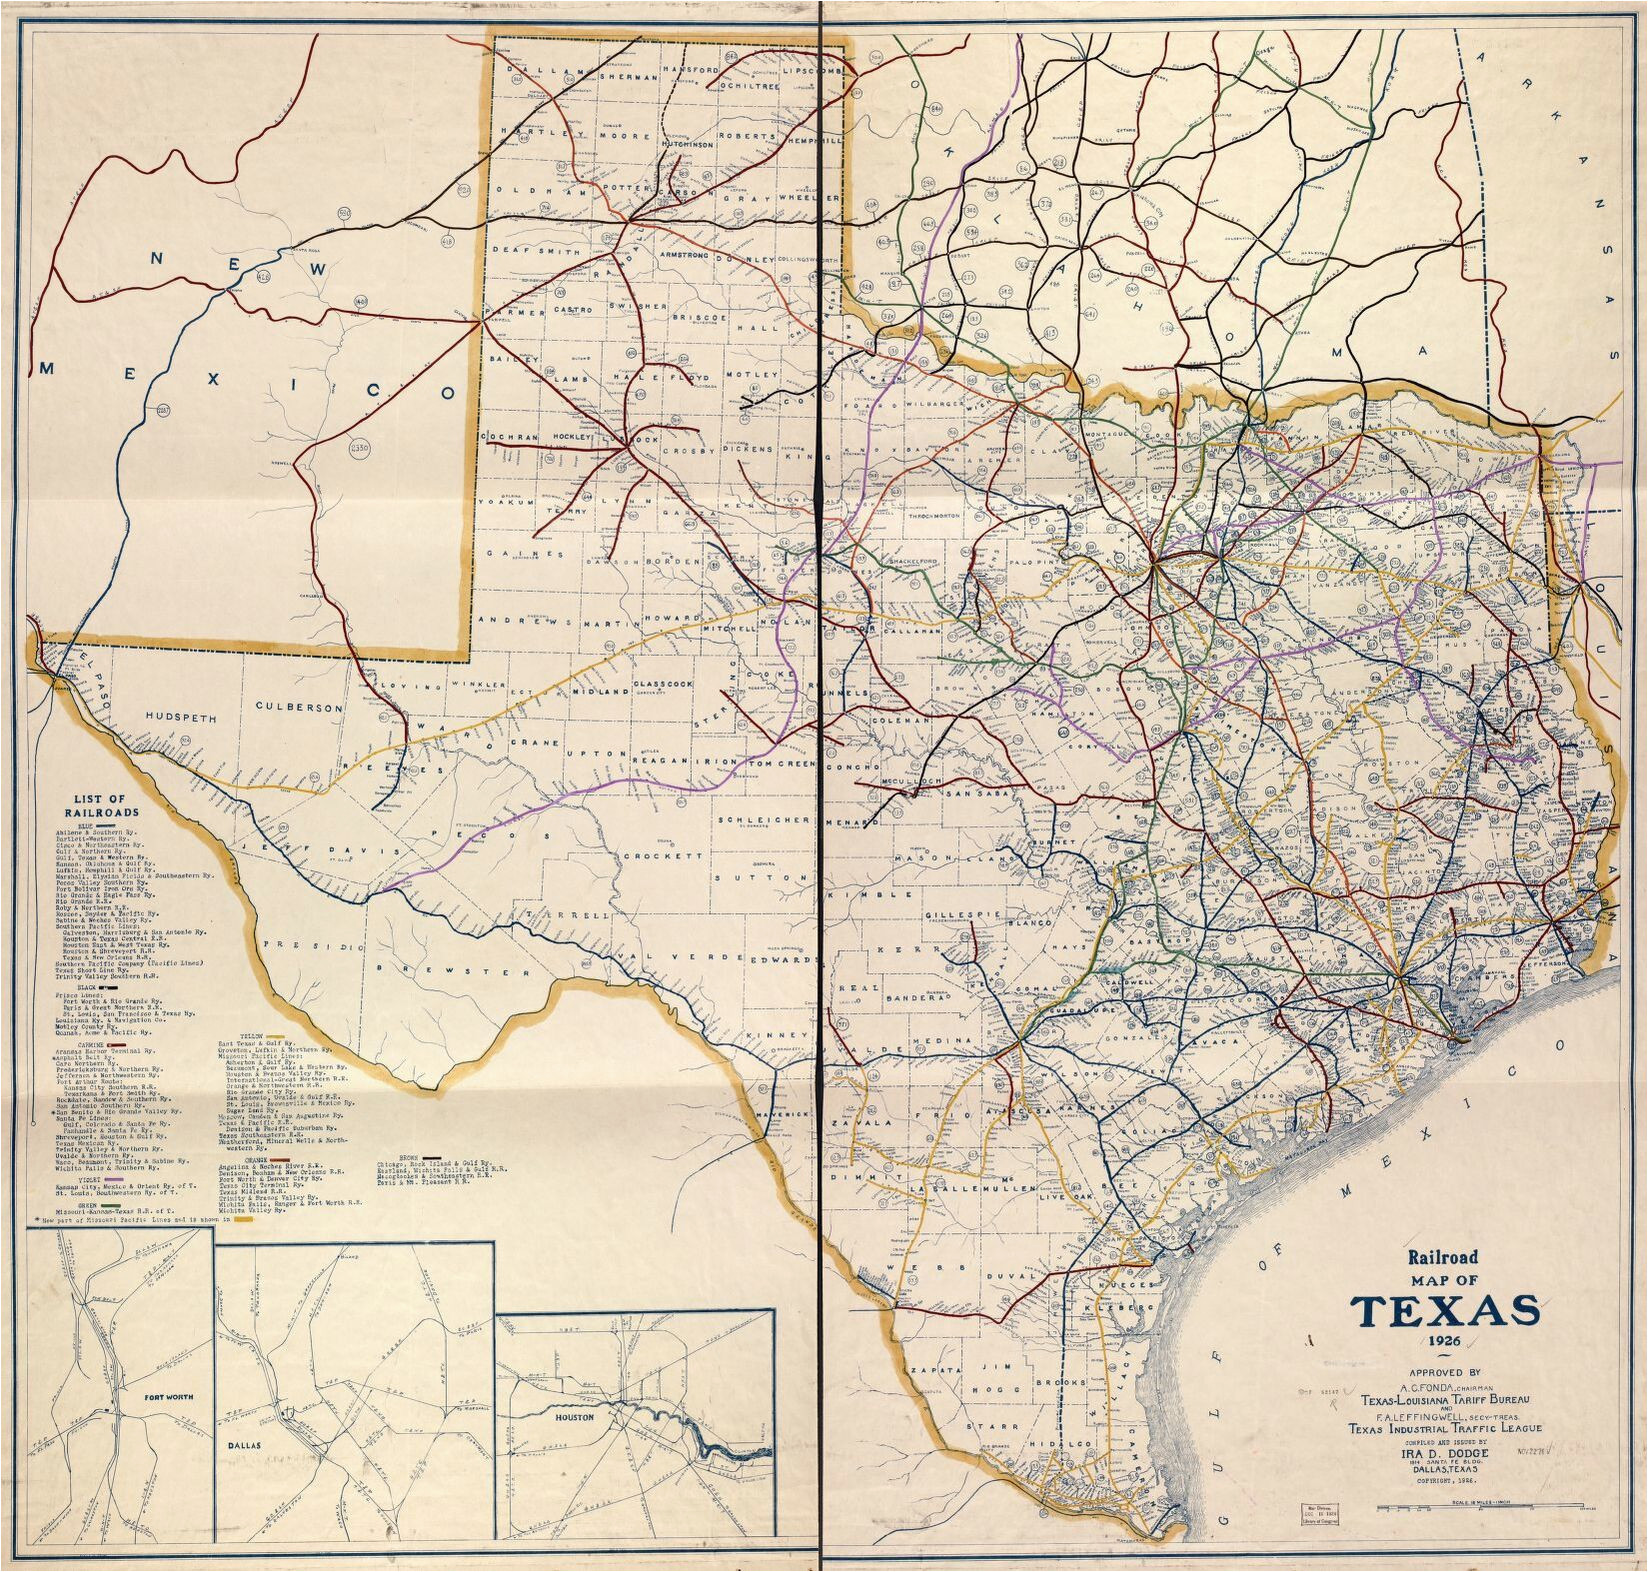 Sabine River Texas Map Map Texas Geography and Map Division ... on chattahoochee river map, wabash river map, united states river map, brazos river map, rio negro river on a map, ohio river map, guadalupe river map, bayou lafourche map, st. johns river map, calcasieu river map, colorado river map, dallas river map, trinity river map, pecos river map, galveston bay river map, tennessee river map, san joaquin river on a map, james river map, arkansas river map, willamette river map,